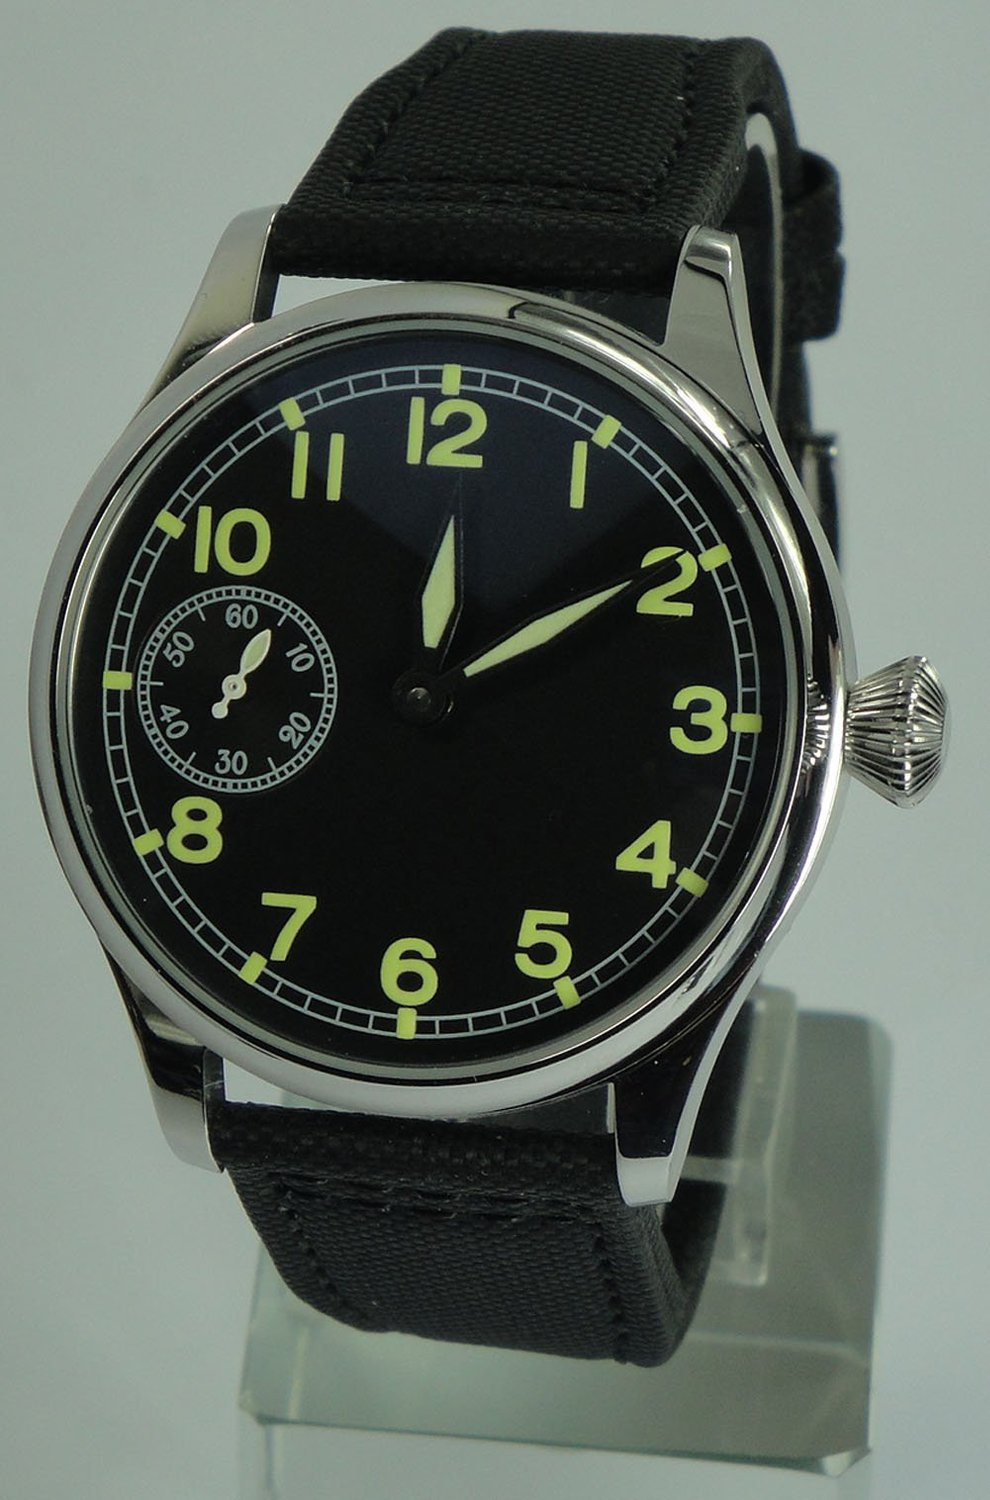 Parnis Portugal Style Men's Mechanical Hand Wind Watch Seagull Movement St36 - parnis store